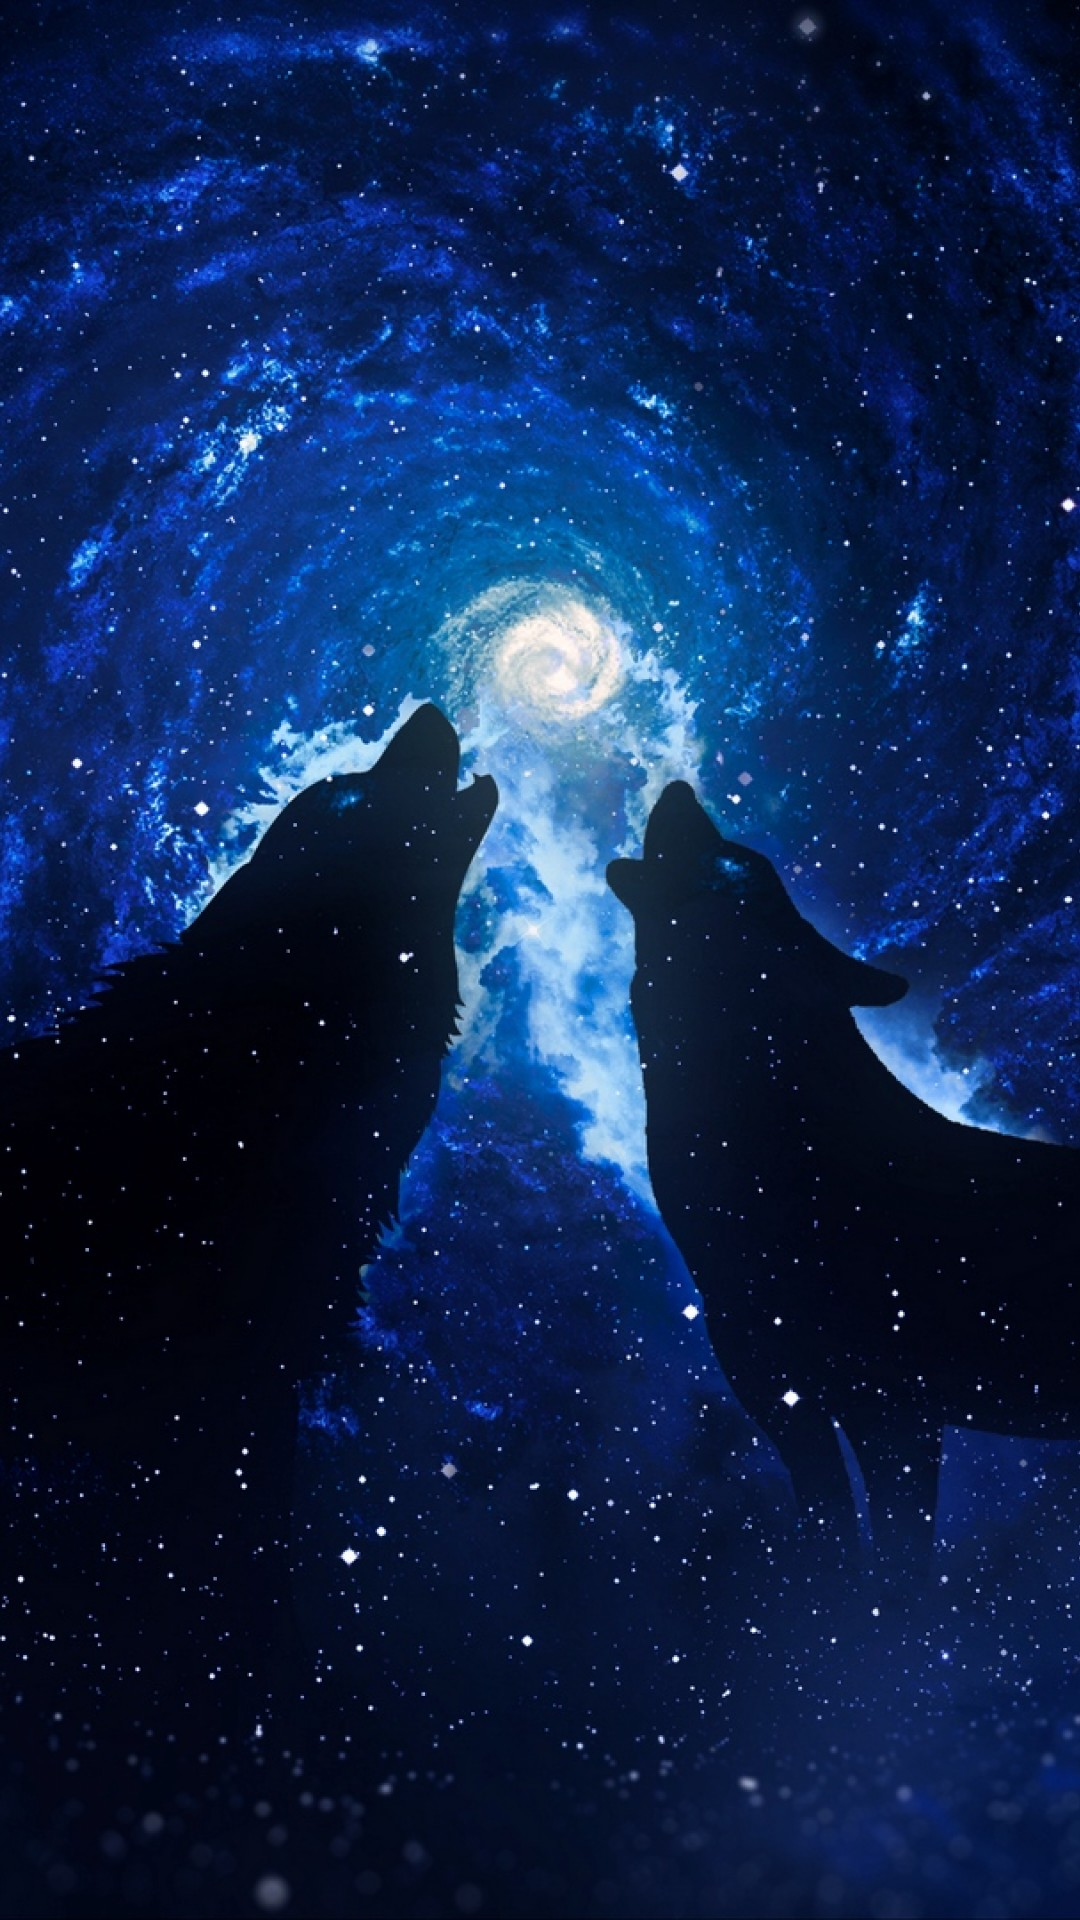 Wolves Under A Starry Sky Hd Wallpaper Iphone 6 6s Plus